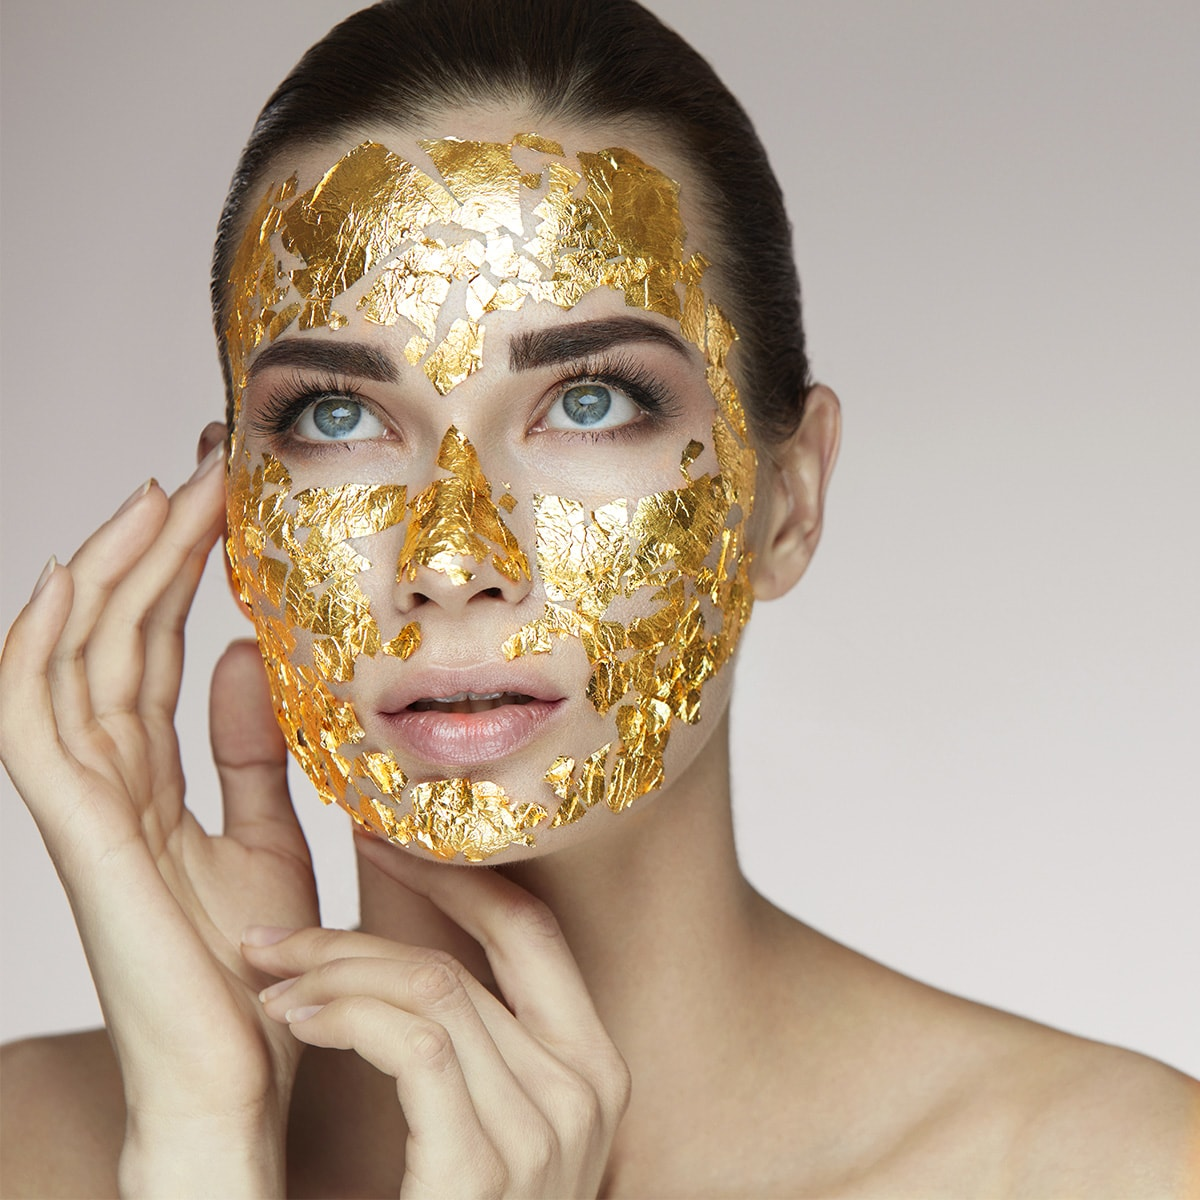 Golden Leaf - 24K Gold Leaf Treatment System - Cocoage Cosmetics gold leaf on skin